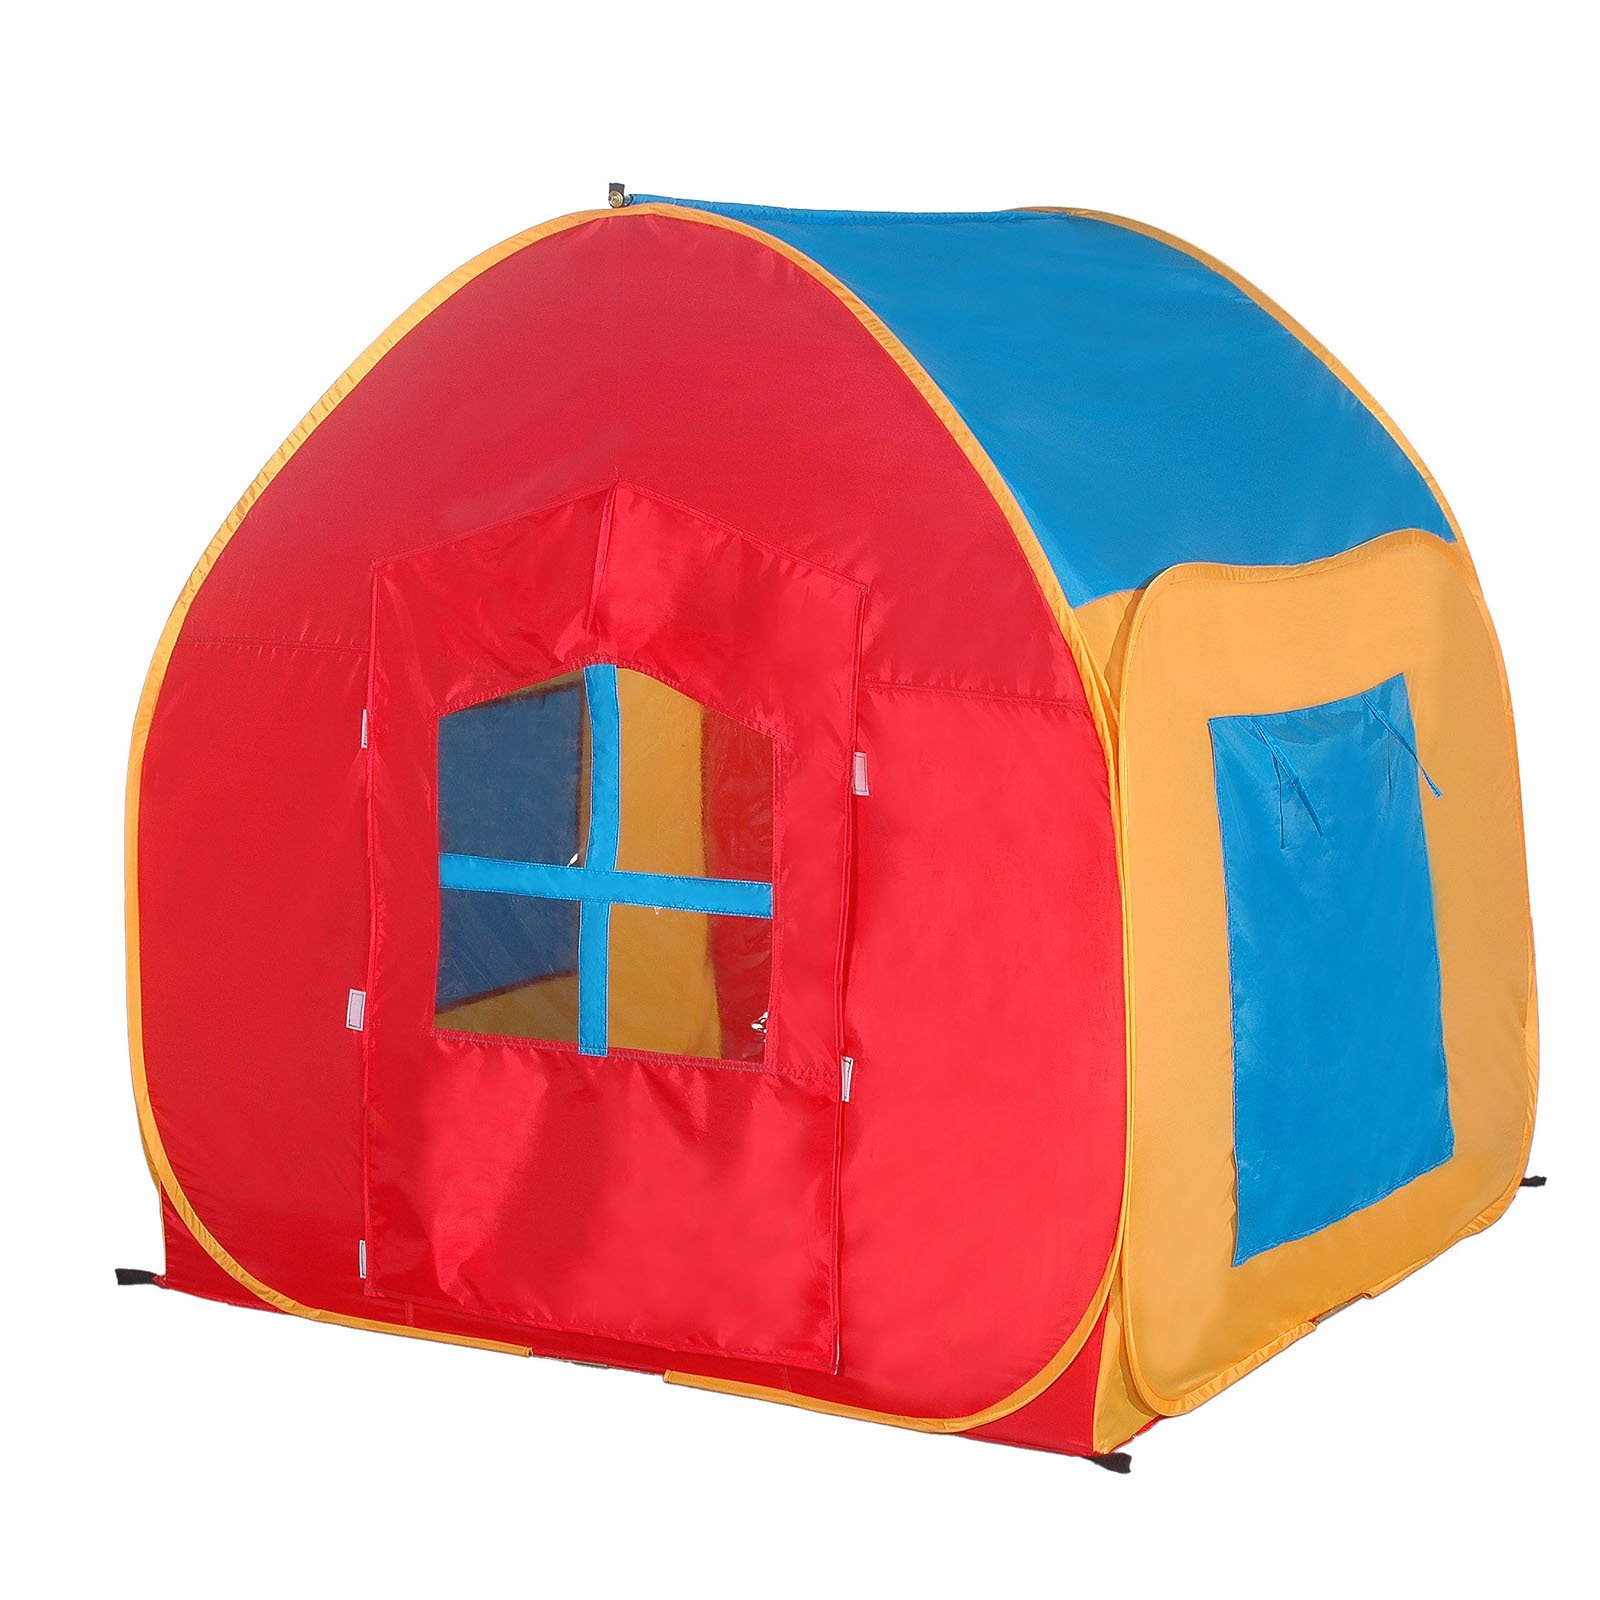 225 & Indoor Pop Up Tent - Yard and Tent Photos Ceciliadeval.Com